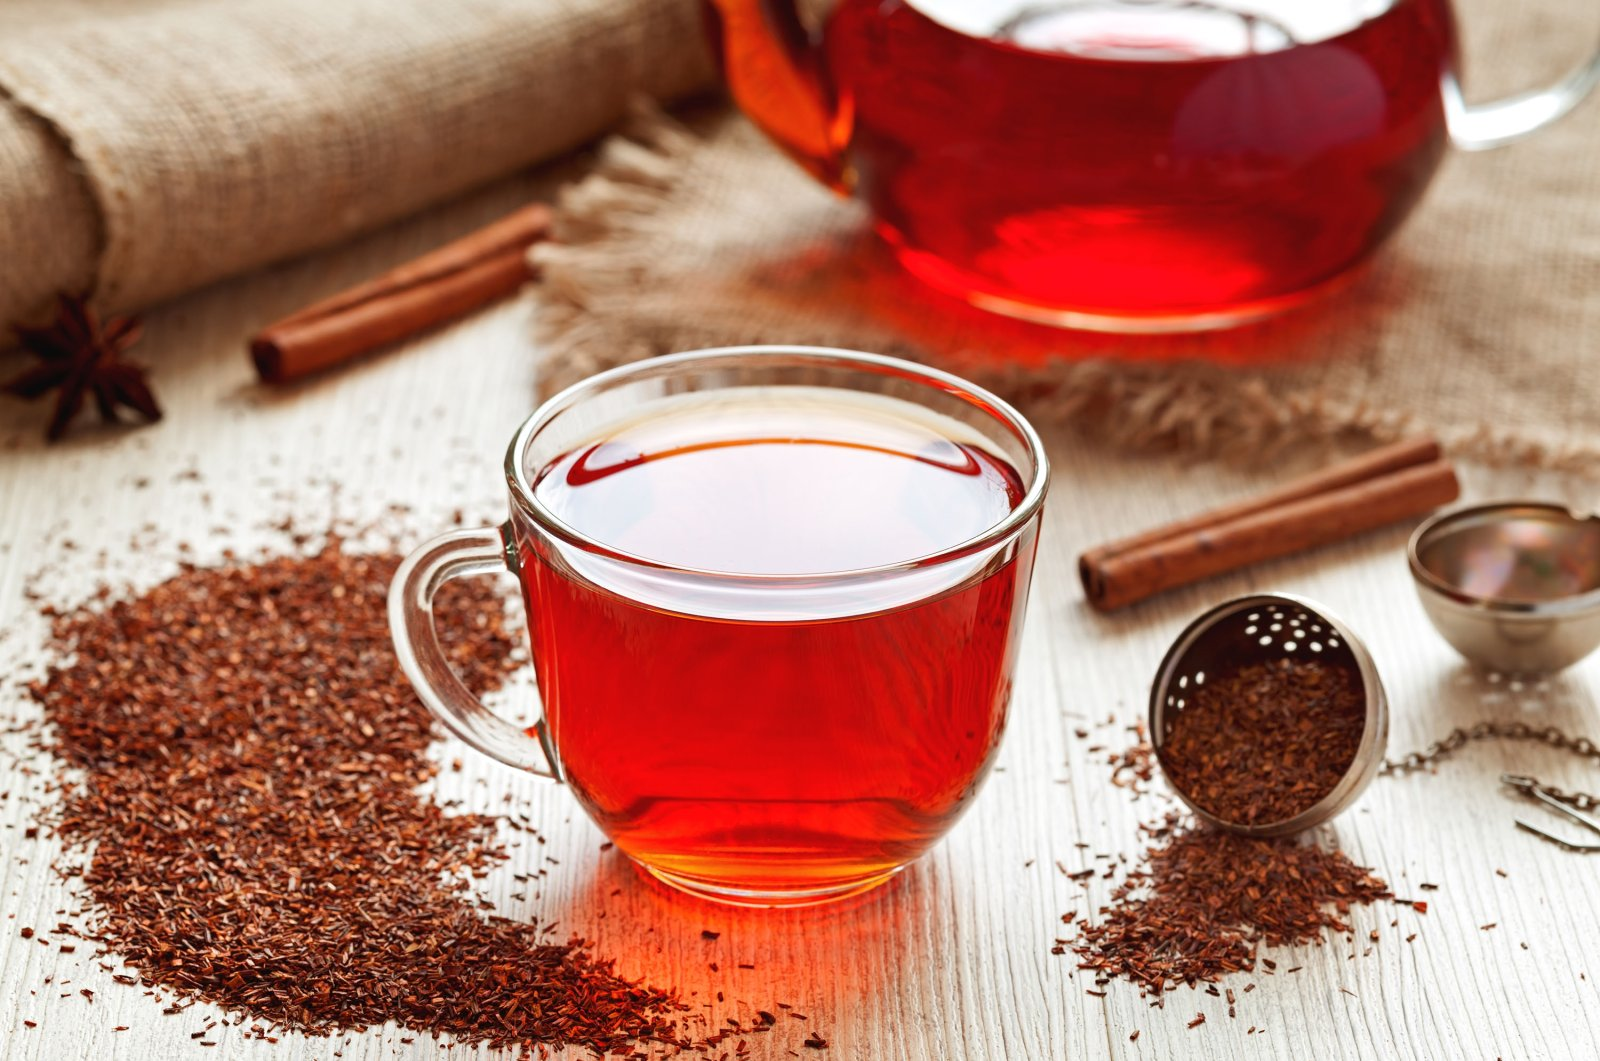 A cup of healthy traditional herbal rooibos tea with spices on a vintage wooden table. (Shutterstock Photo)